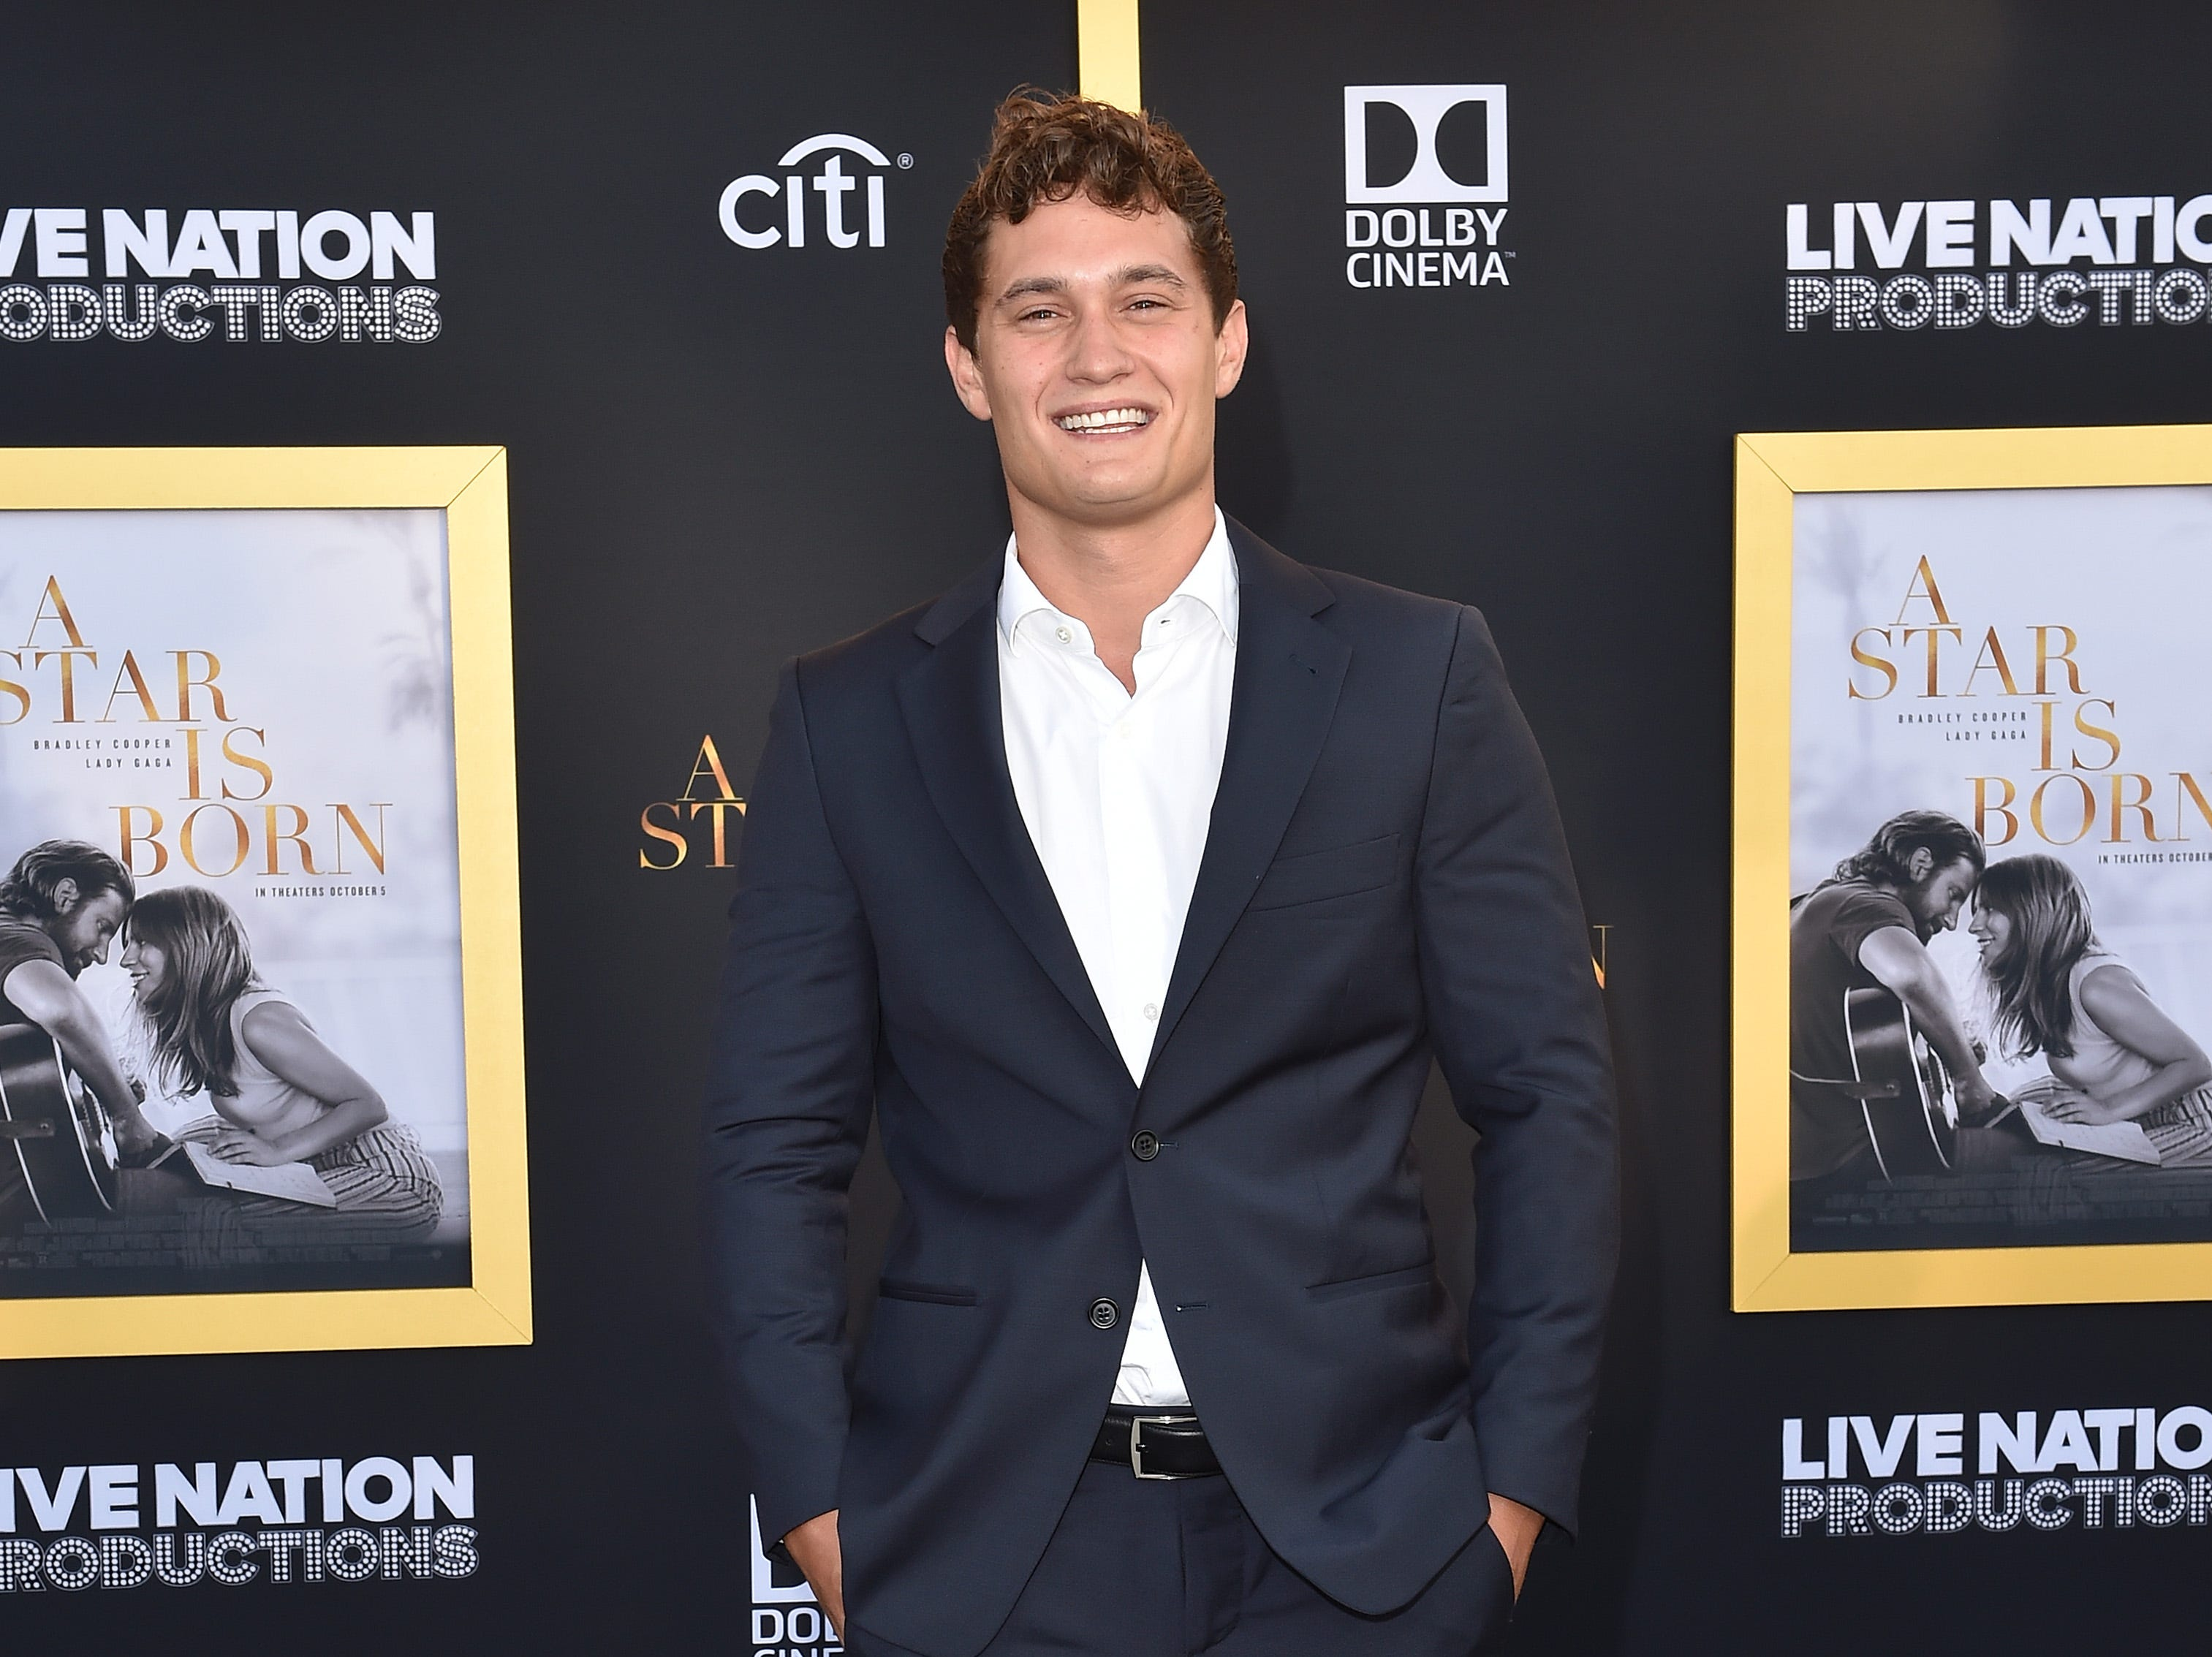 LOS ANGELES, CA - SEPTEMBER 24:  Rafi Gavron attends the premiere of Warner Bros. Pictures' 'A Star Is Born' at The Shrine Auditorium on September 24, 2018 in Los Angeles, California.  (Photo by Axelle/Bauer-Griffin/FilmMagic) ORG XMIT: 775229470 ORIG FILE ID: 1039815752